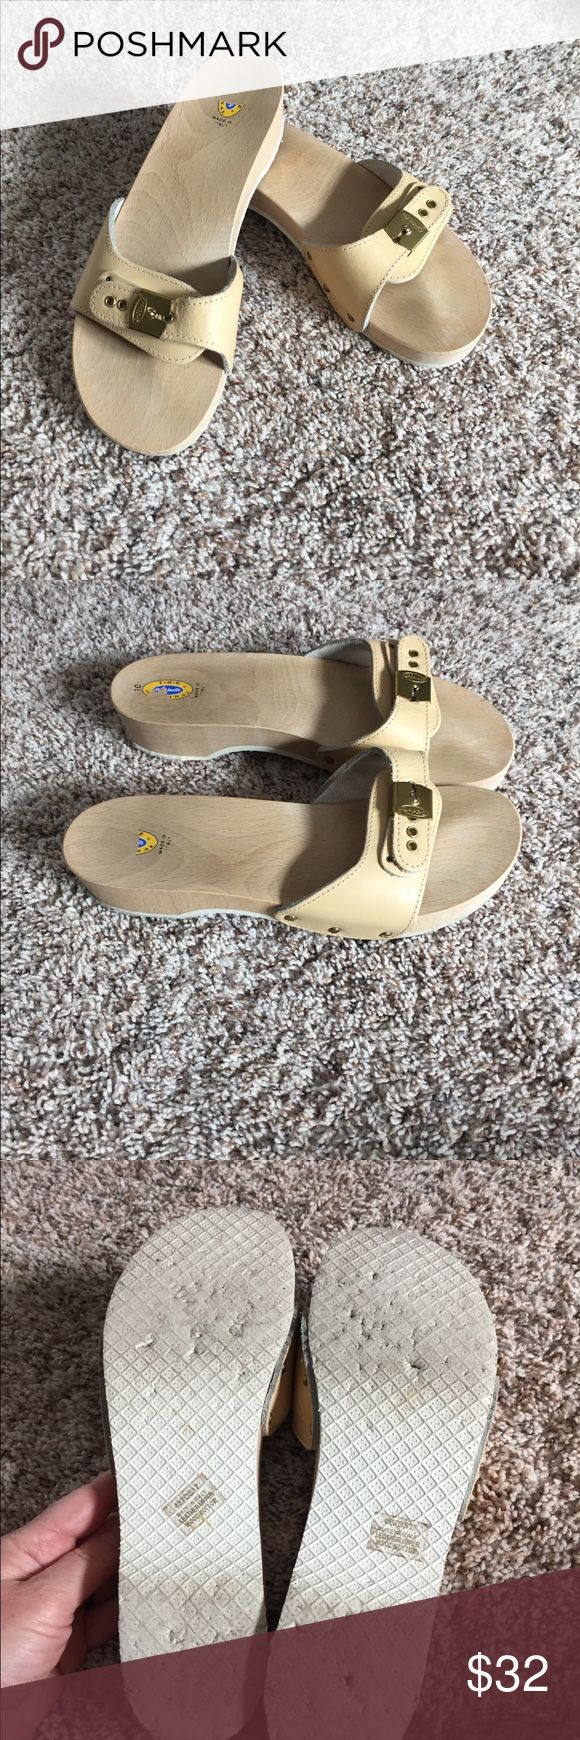 Original wooden Dr. Scholl's sandals Excellent condition, hardly worn original wooden and leather Dr. Scholls sandals.  Gold hardware buckle, adjustable strap. Leather has slight aging, hardly affects looks. Dr. Scholl's Shoes Sandals